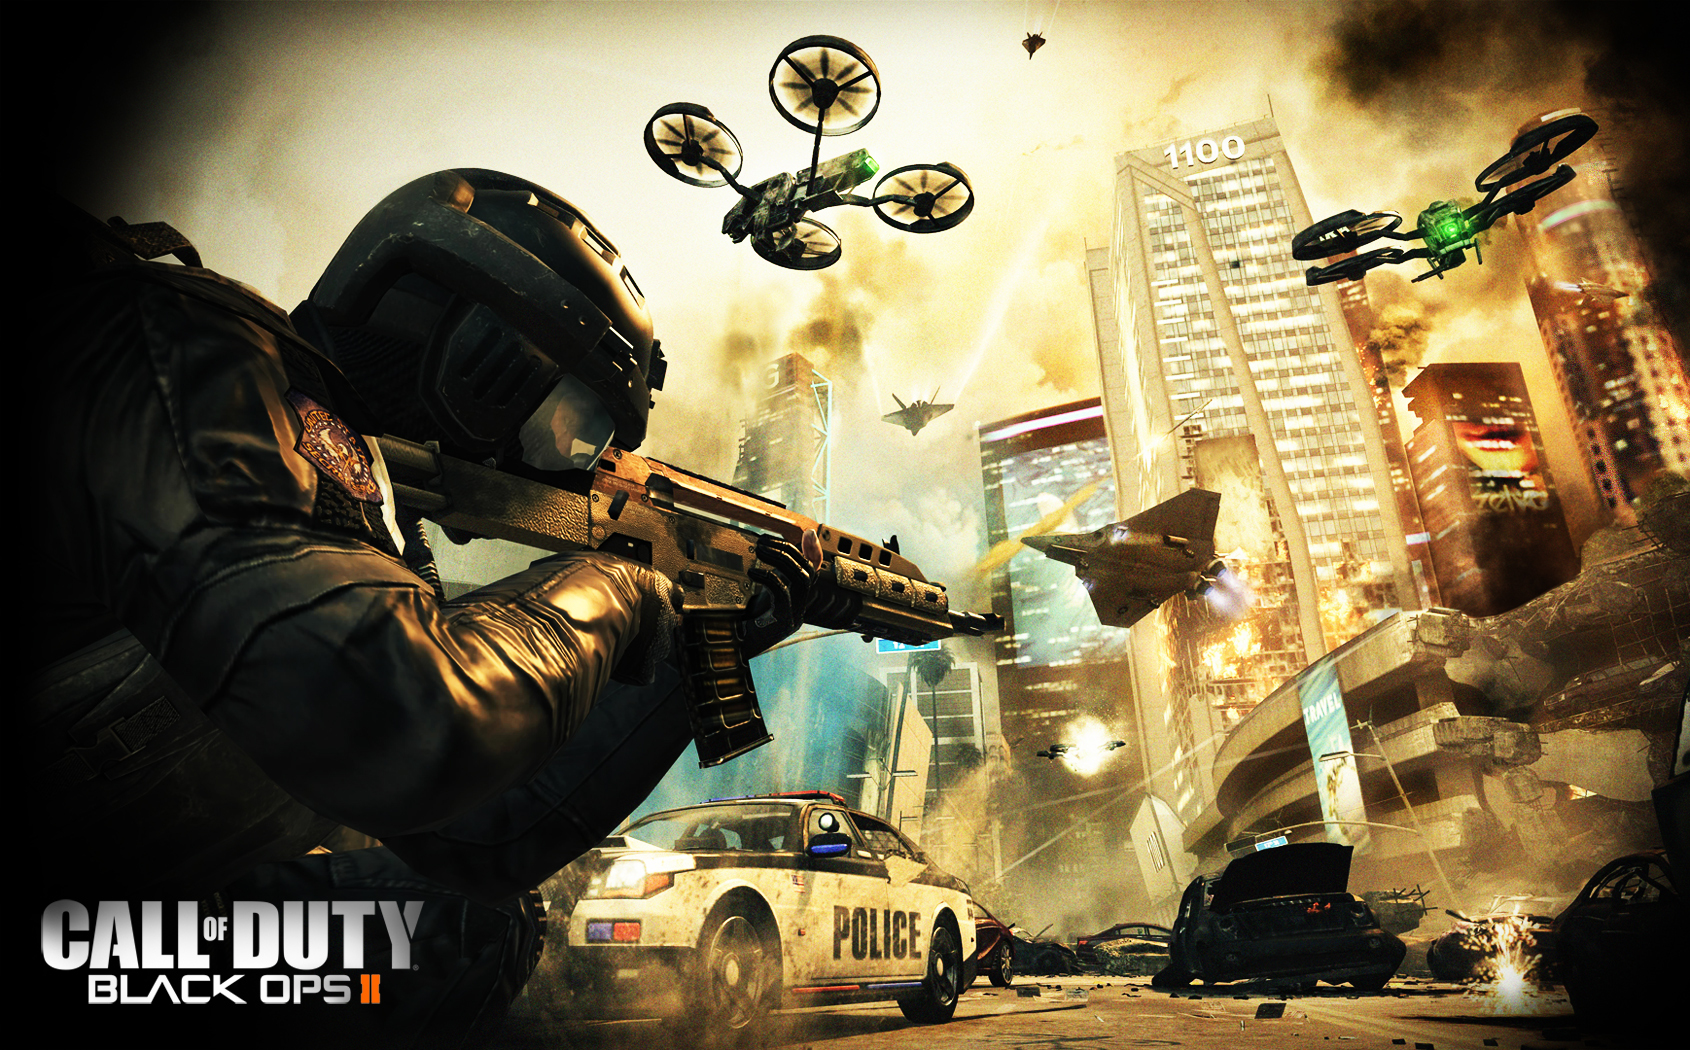 http://image.jeuxvideo.com/downloads/fonds-ecrans-wallpaper/00012717/call-of-duty-black-ops-ii-33287-wp.jpg